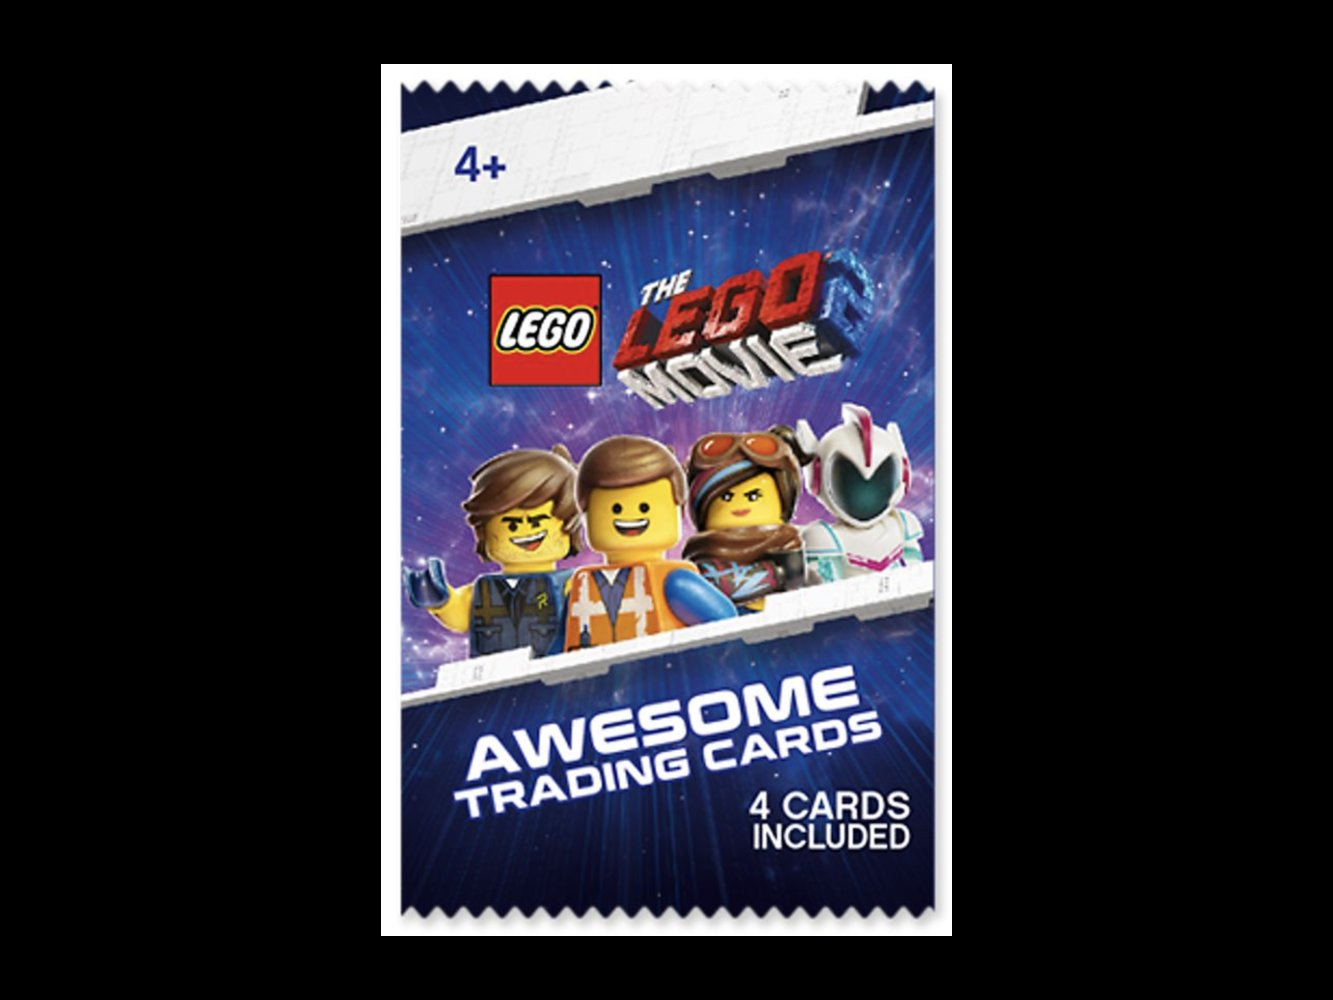 The LEGO Movie 2 Awesome Trading Cards